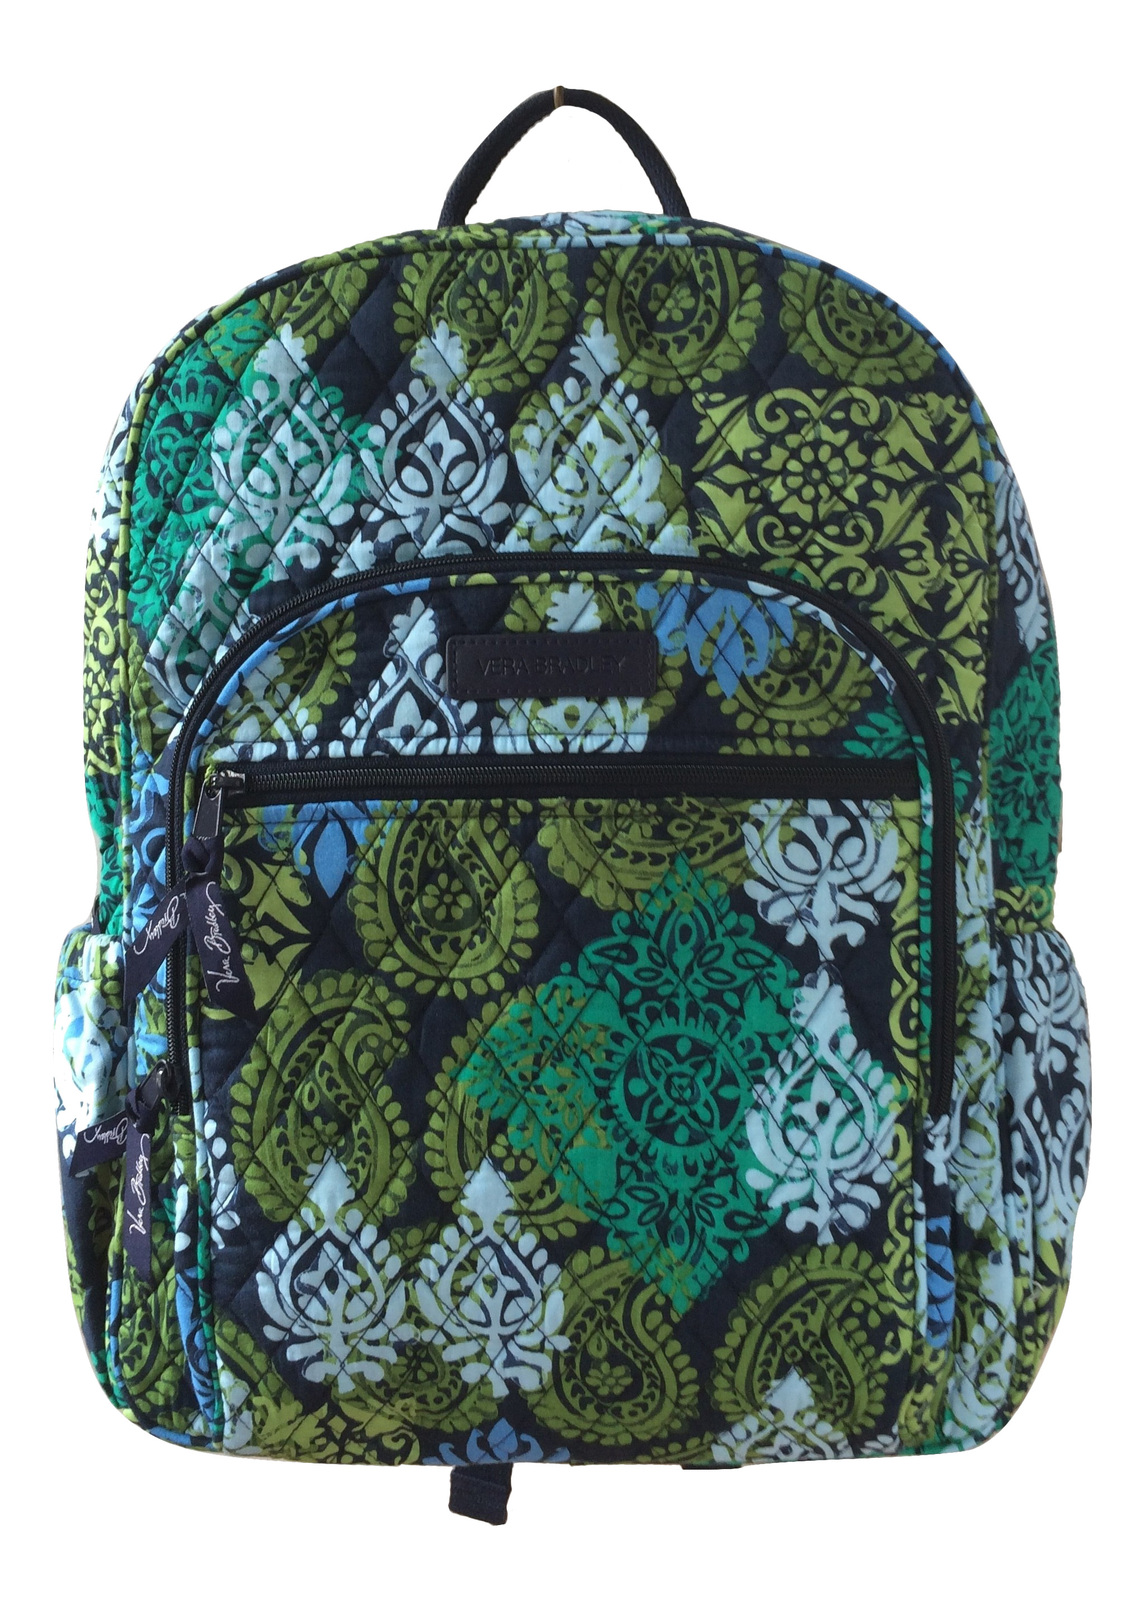 22ee503592 Img 1335 burned. Img 1335 burned. Previous. Vera Bradley Campus Backpack  with Caribbean Sea with Navy Interior